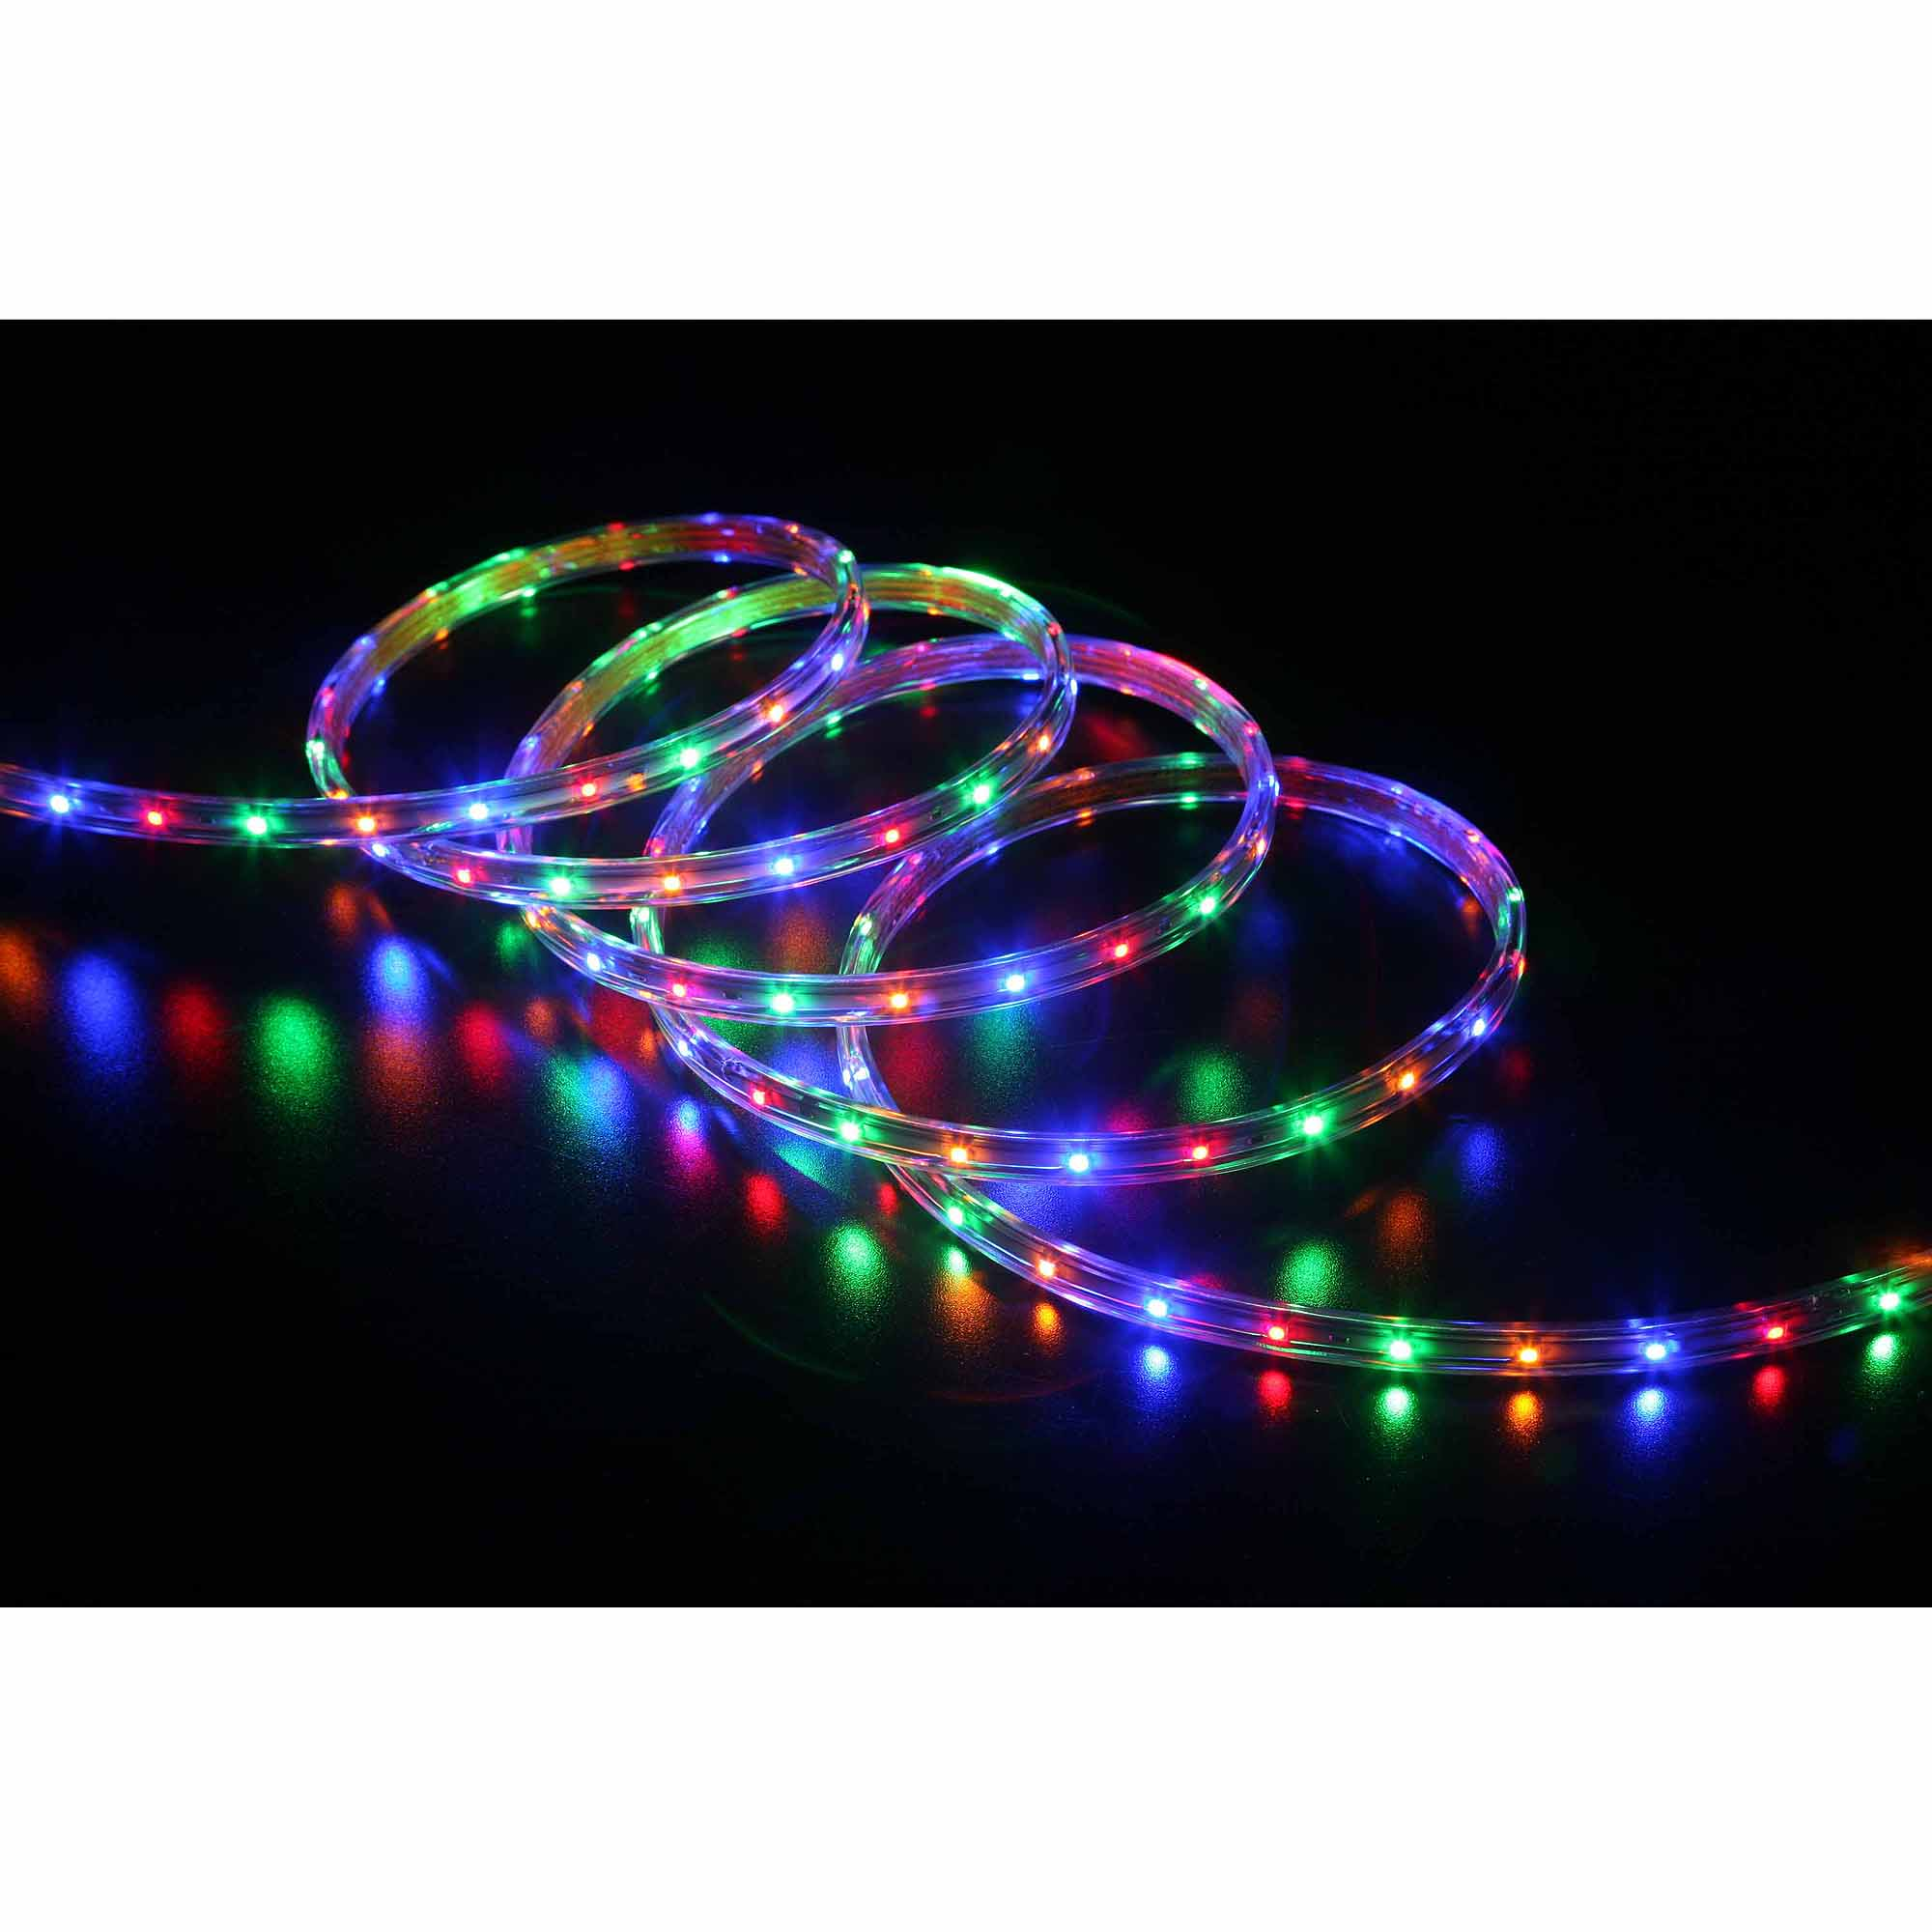 Led Lights At Walmart Holiday Time 19 6 Led Multi Colored Rope Light 240 Count